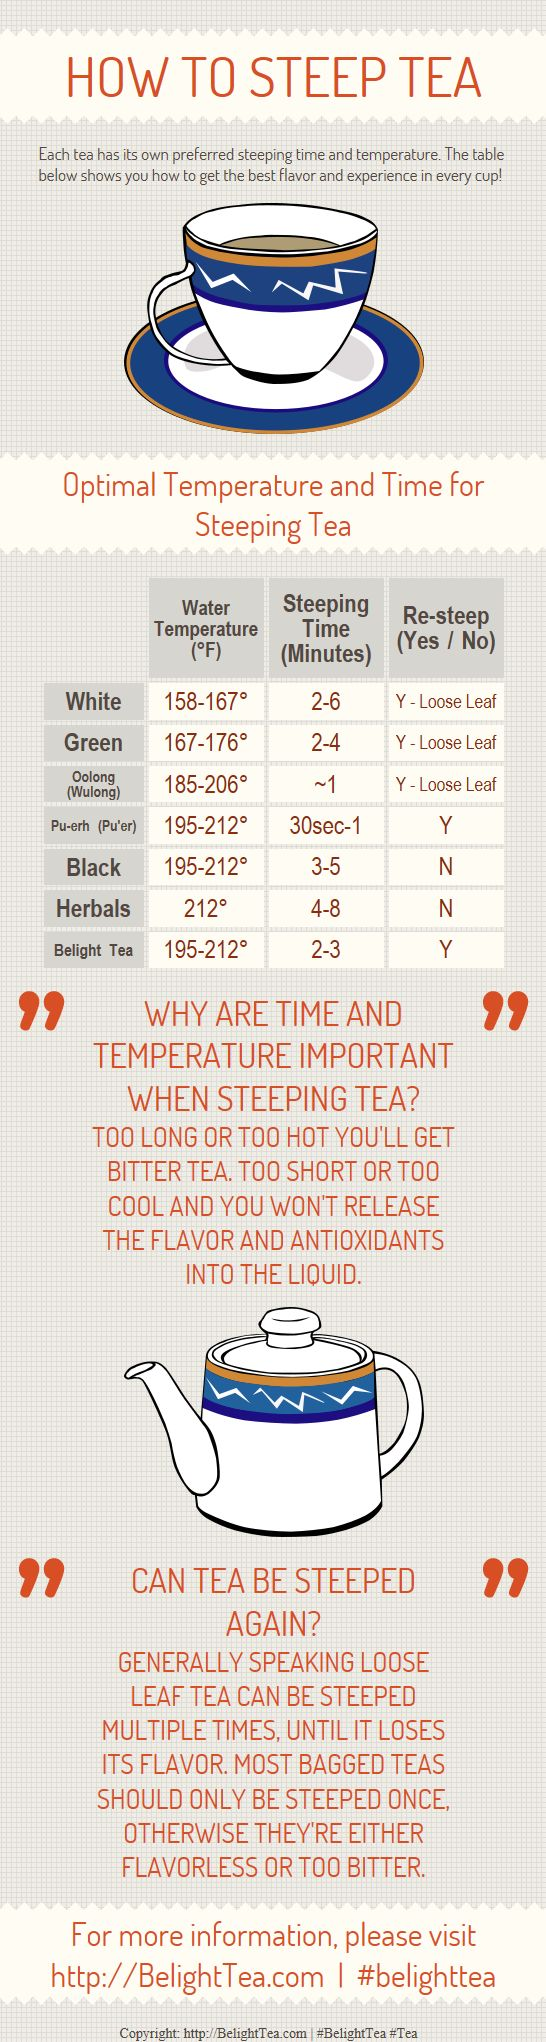 How to Steep Tea #Infographic #infografía